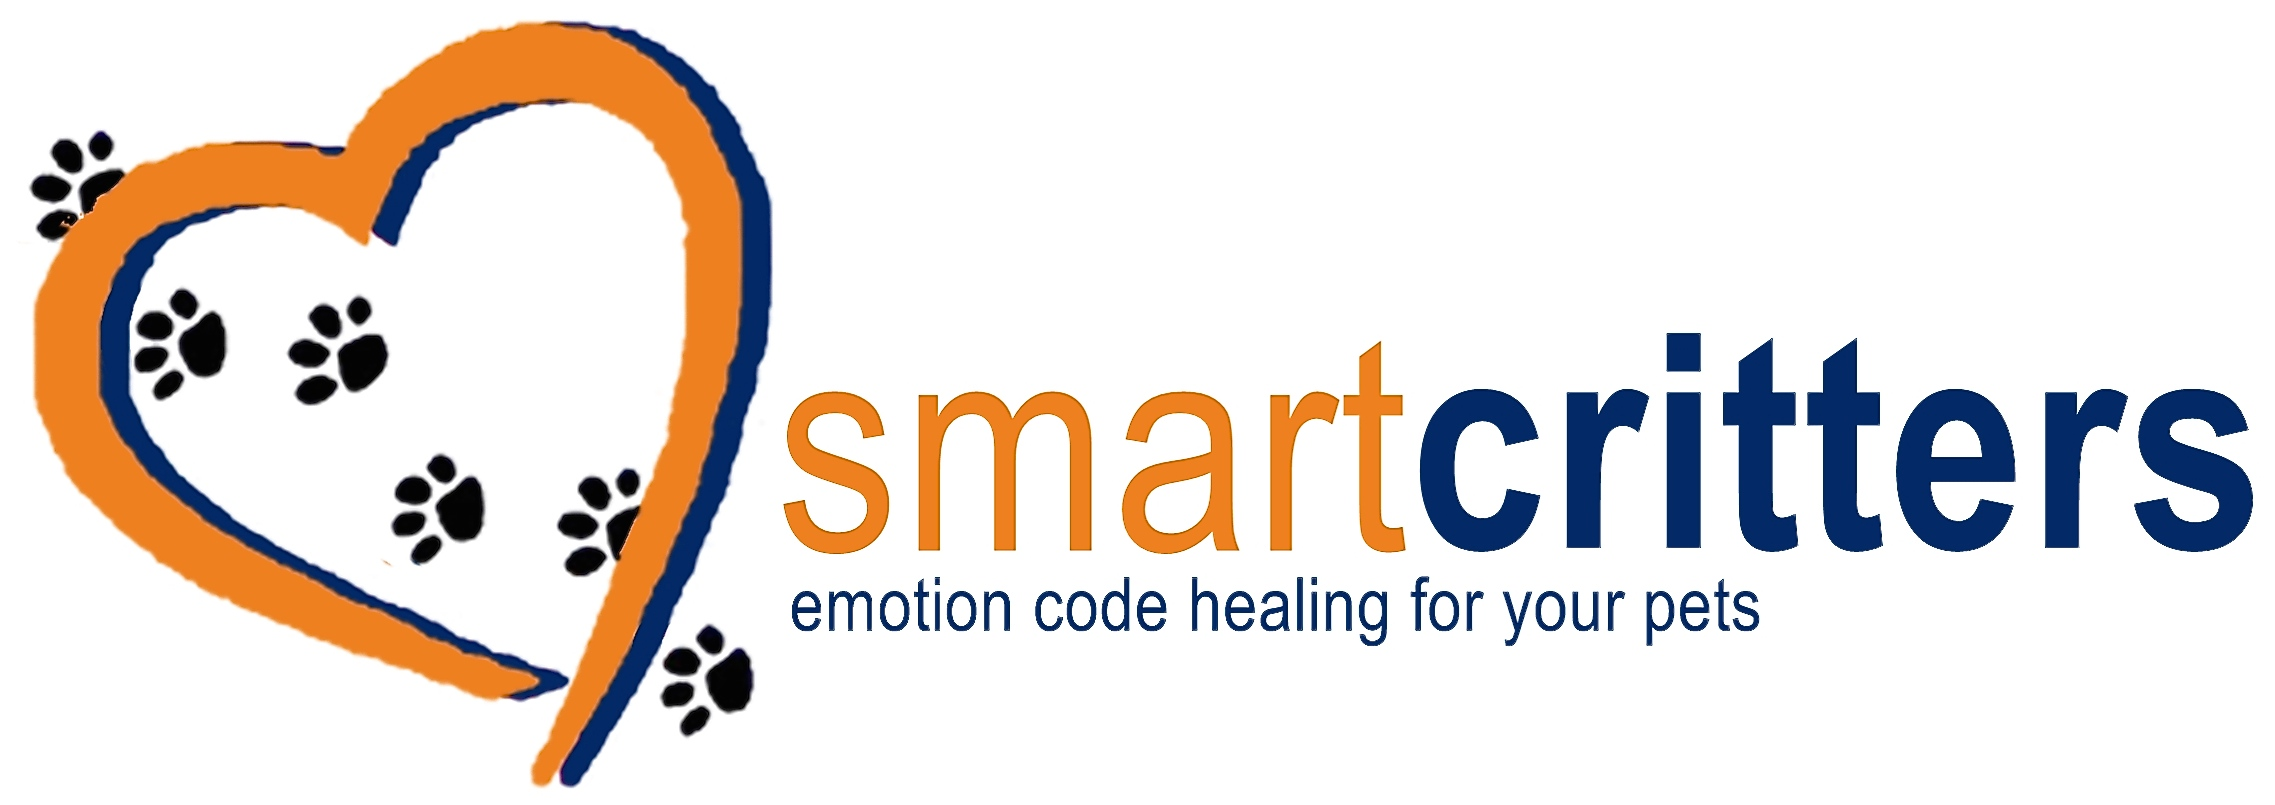 smartcritters logo 2